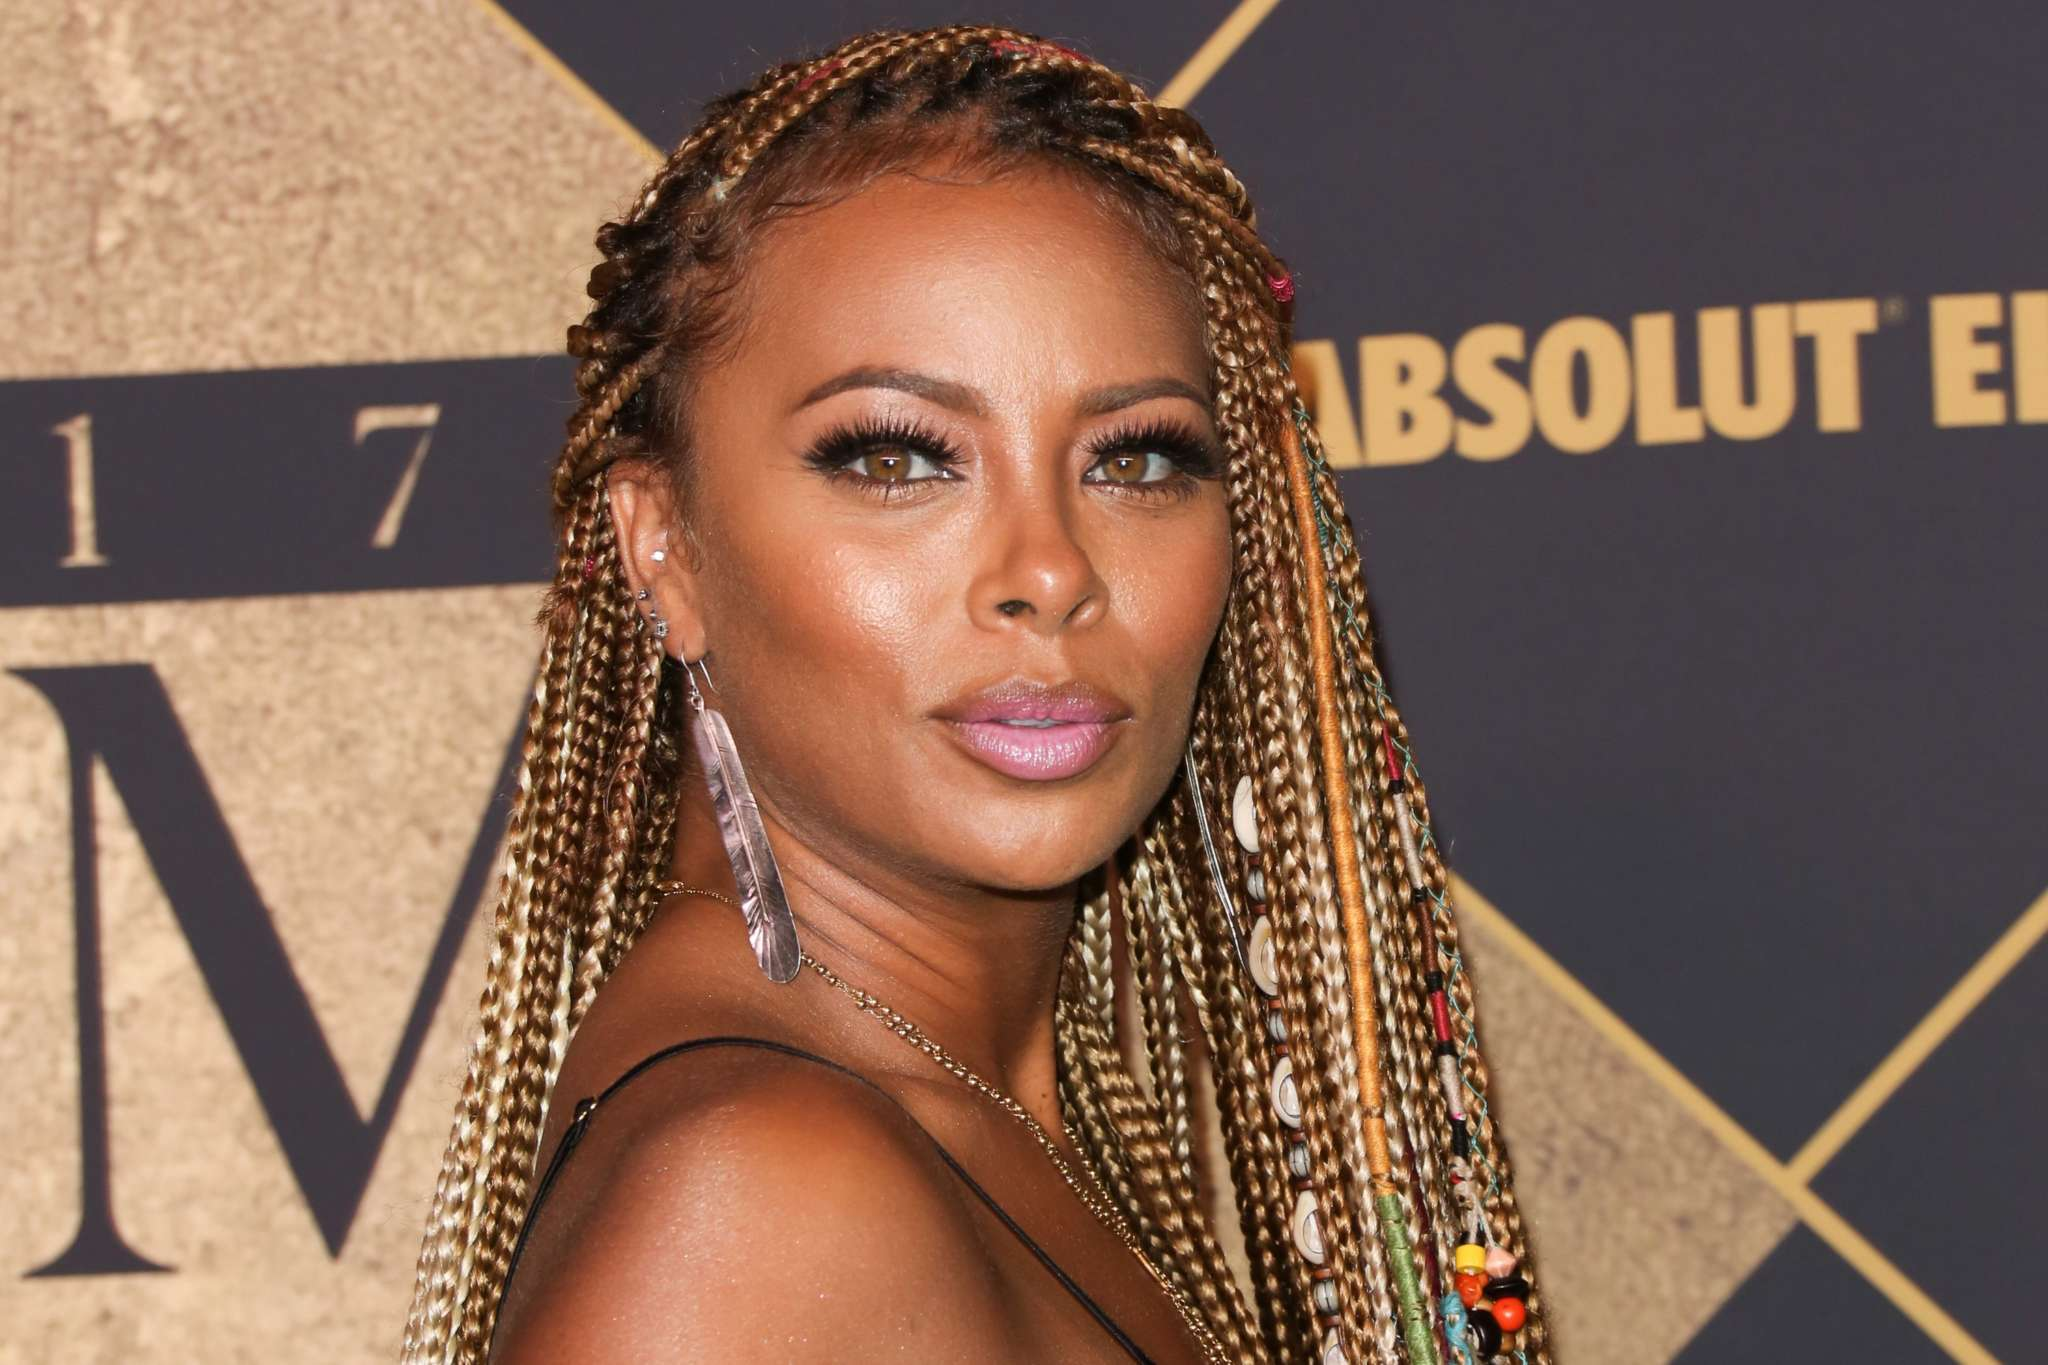 Eva Marcille's Video With The Sterling Boys Will Make Your Day – See Little Mikey Being Cute!